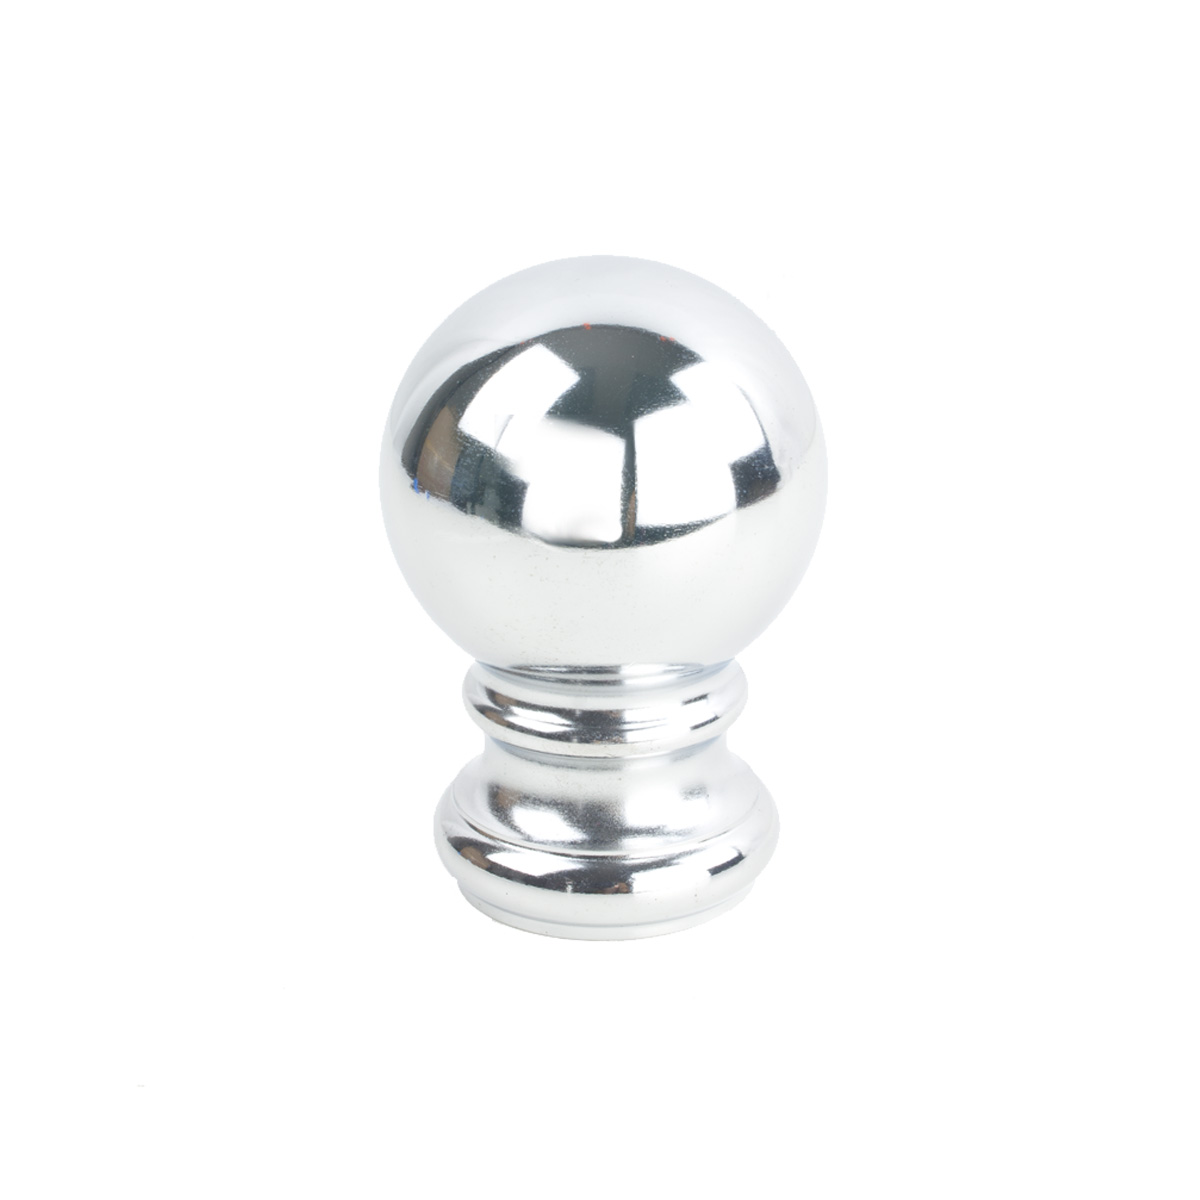 Iron Ball Finial 4 Chrome